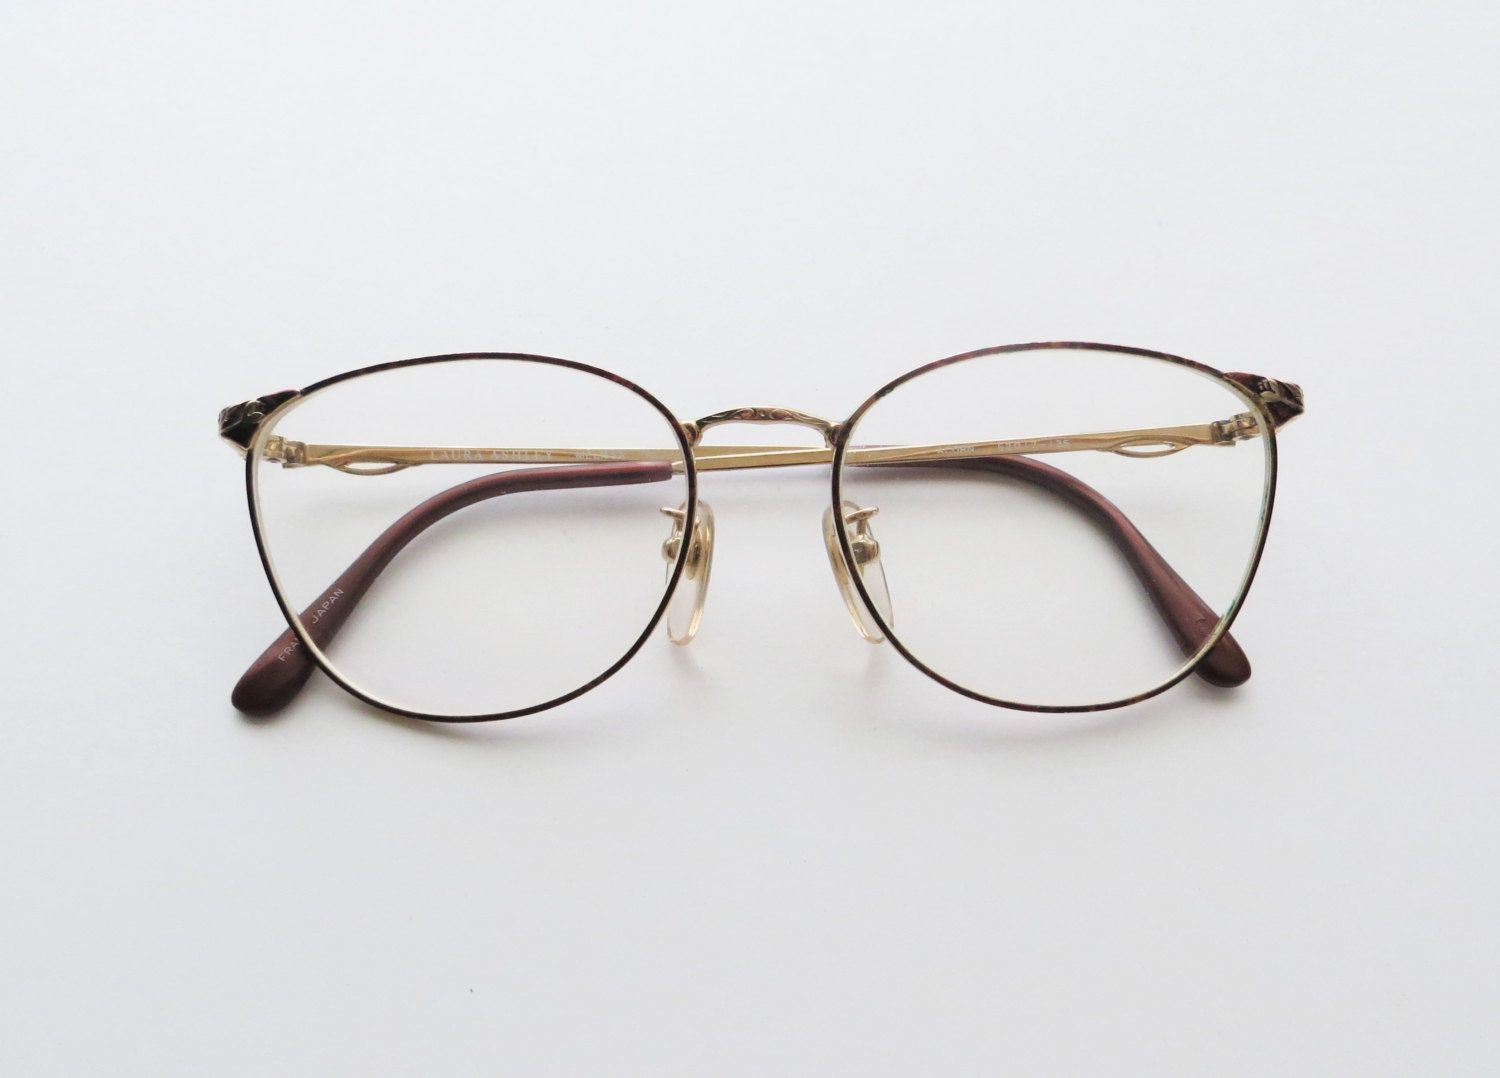 Glasses Frame Styles : 90s Laura Ashley Wire Rim Glasses